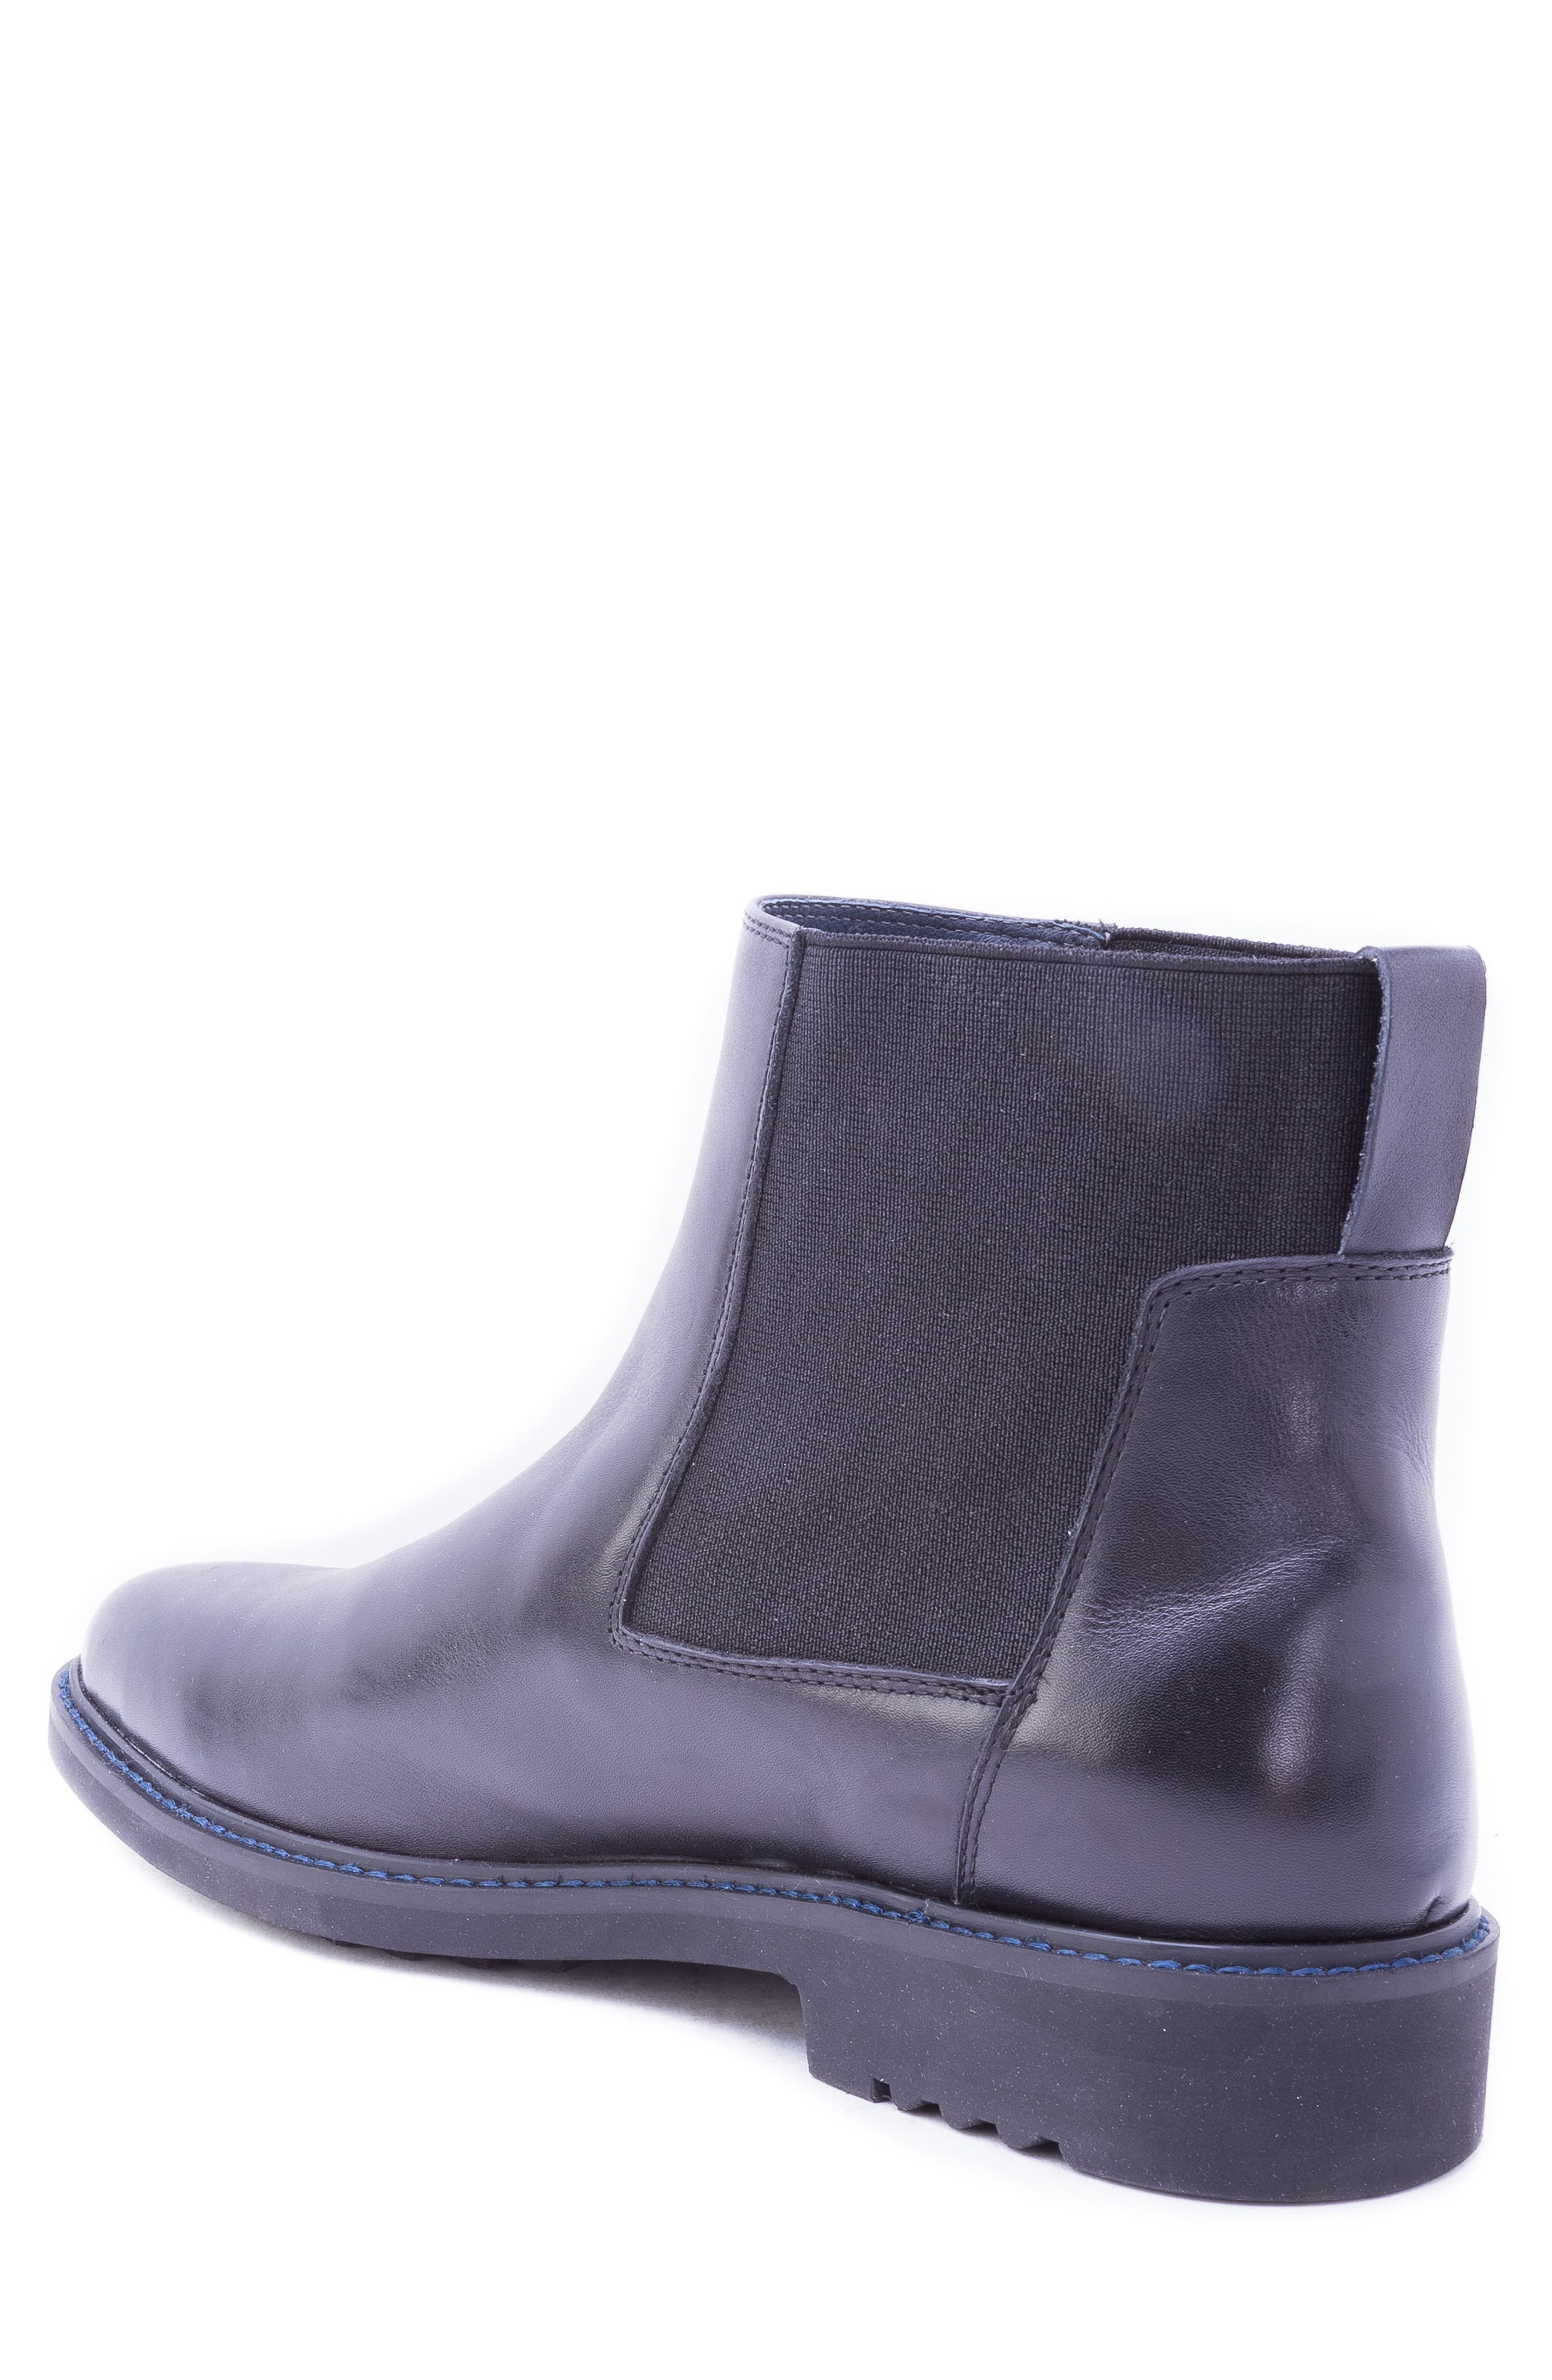 Riviere Chelsea Boot,                             Alternate thumbnail 2, color,                             001